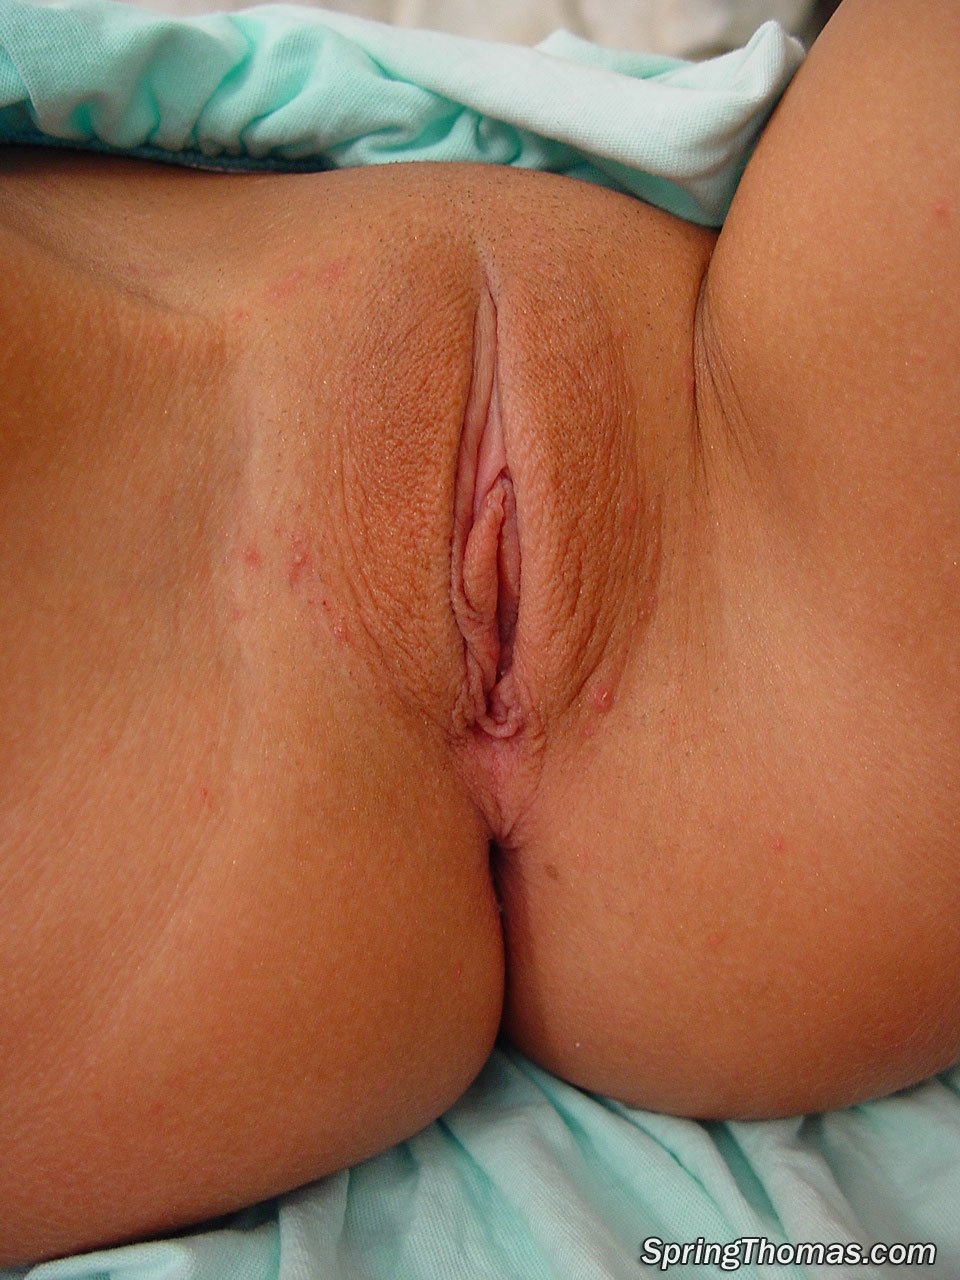 Local swingers and jacksonville nc handjob granny pics